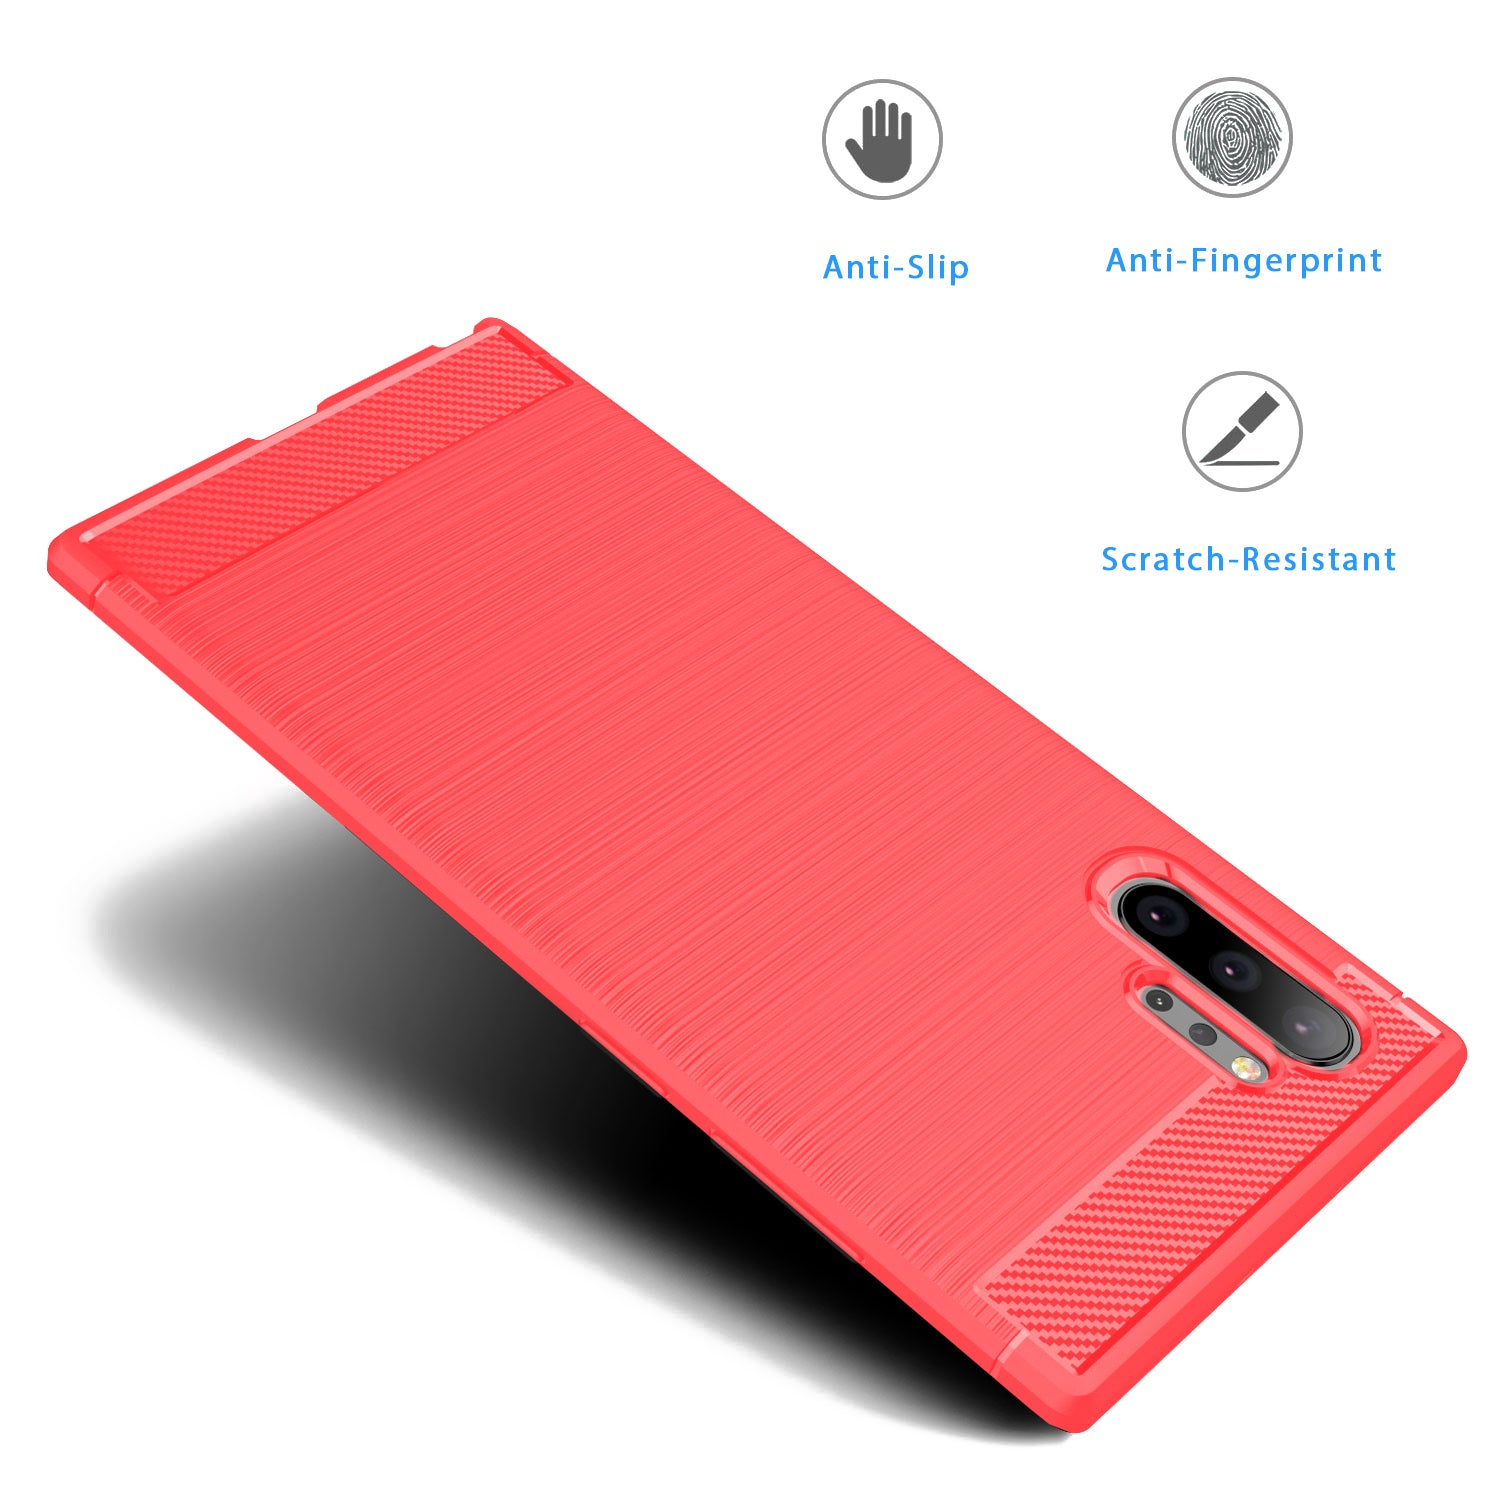 HYTX Galaxy Note 10+ Case Carbon Fiber ( Red )